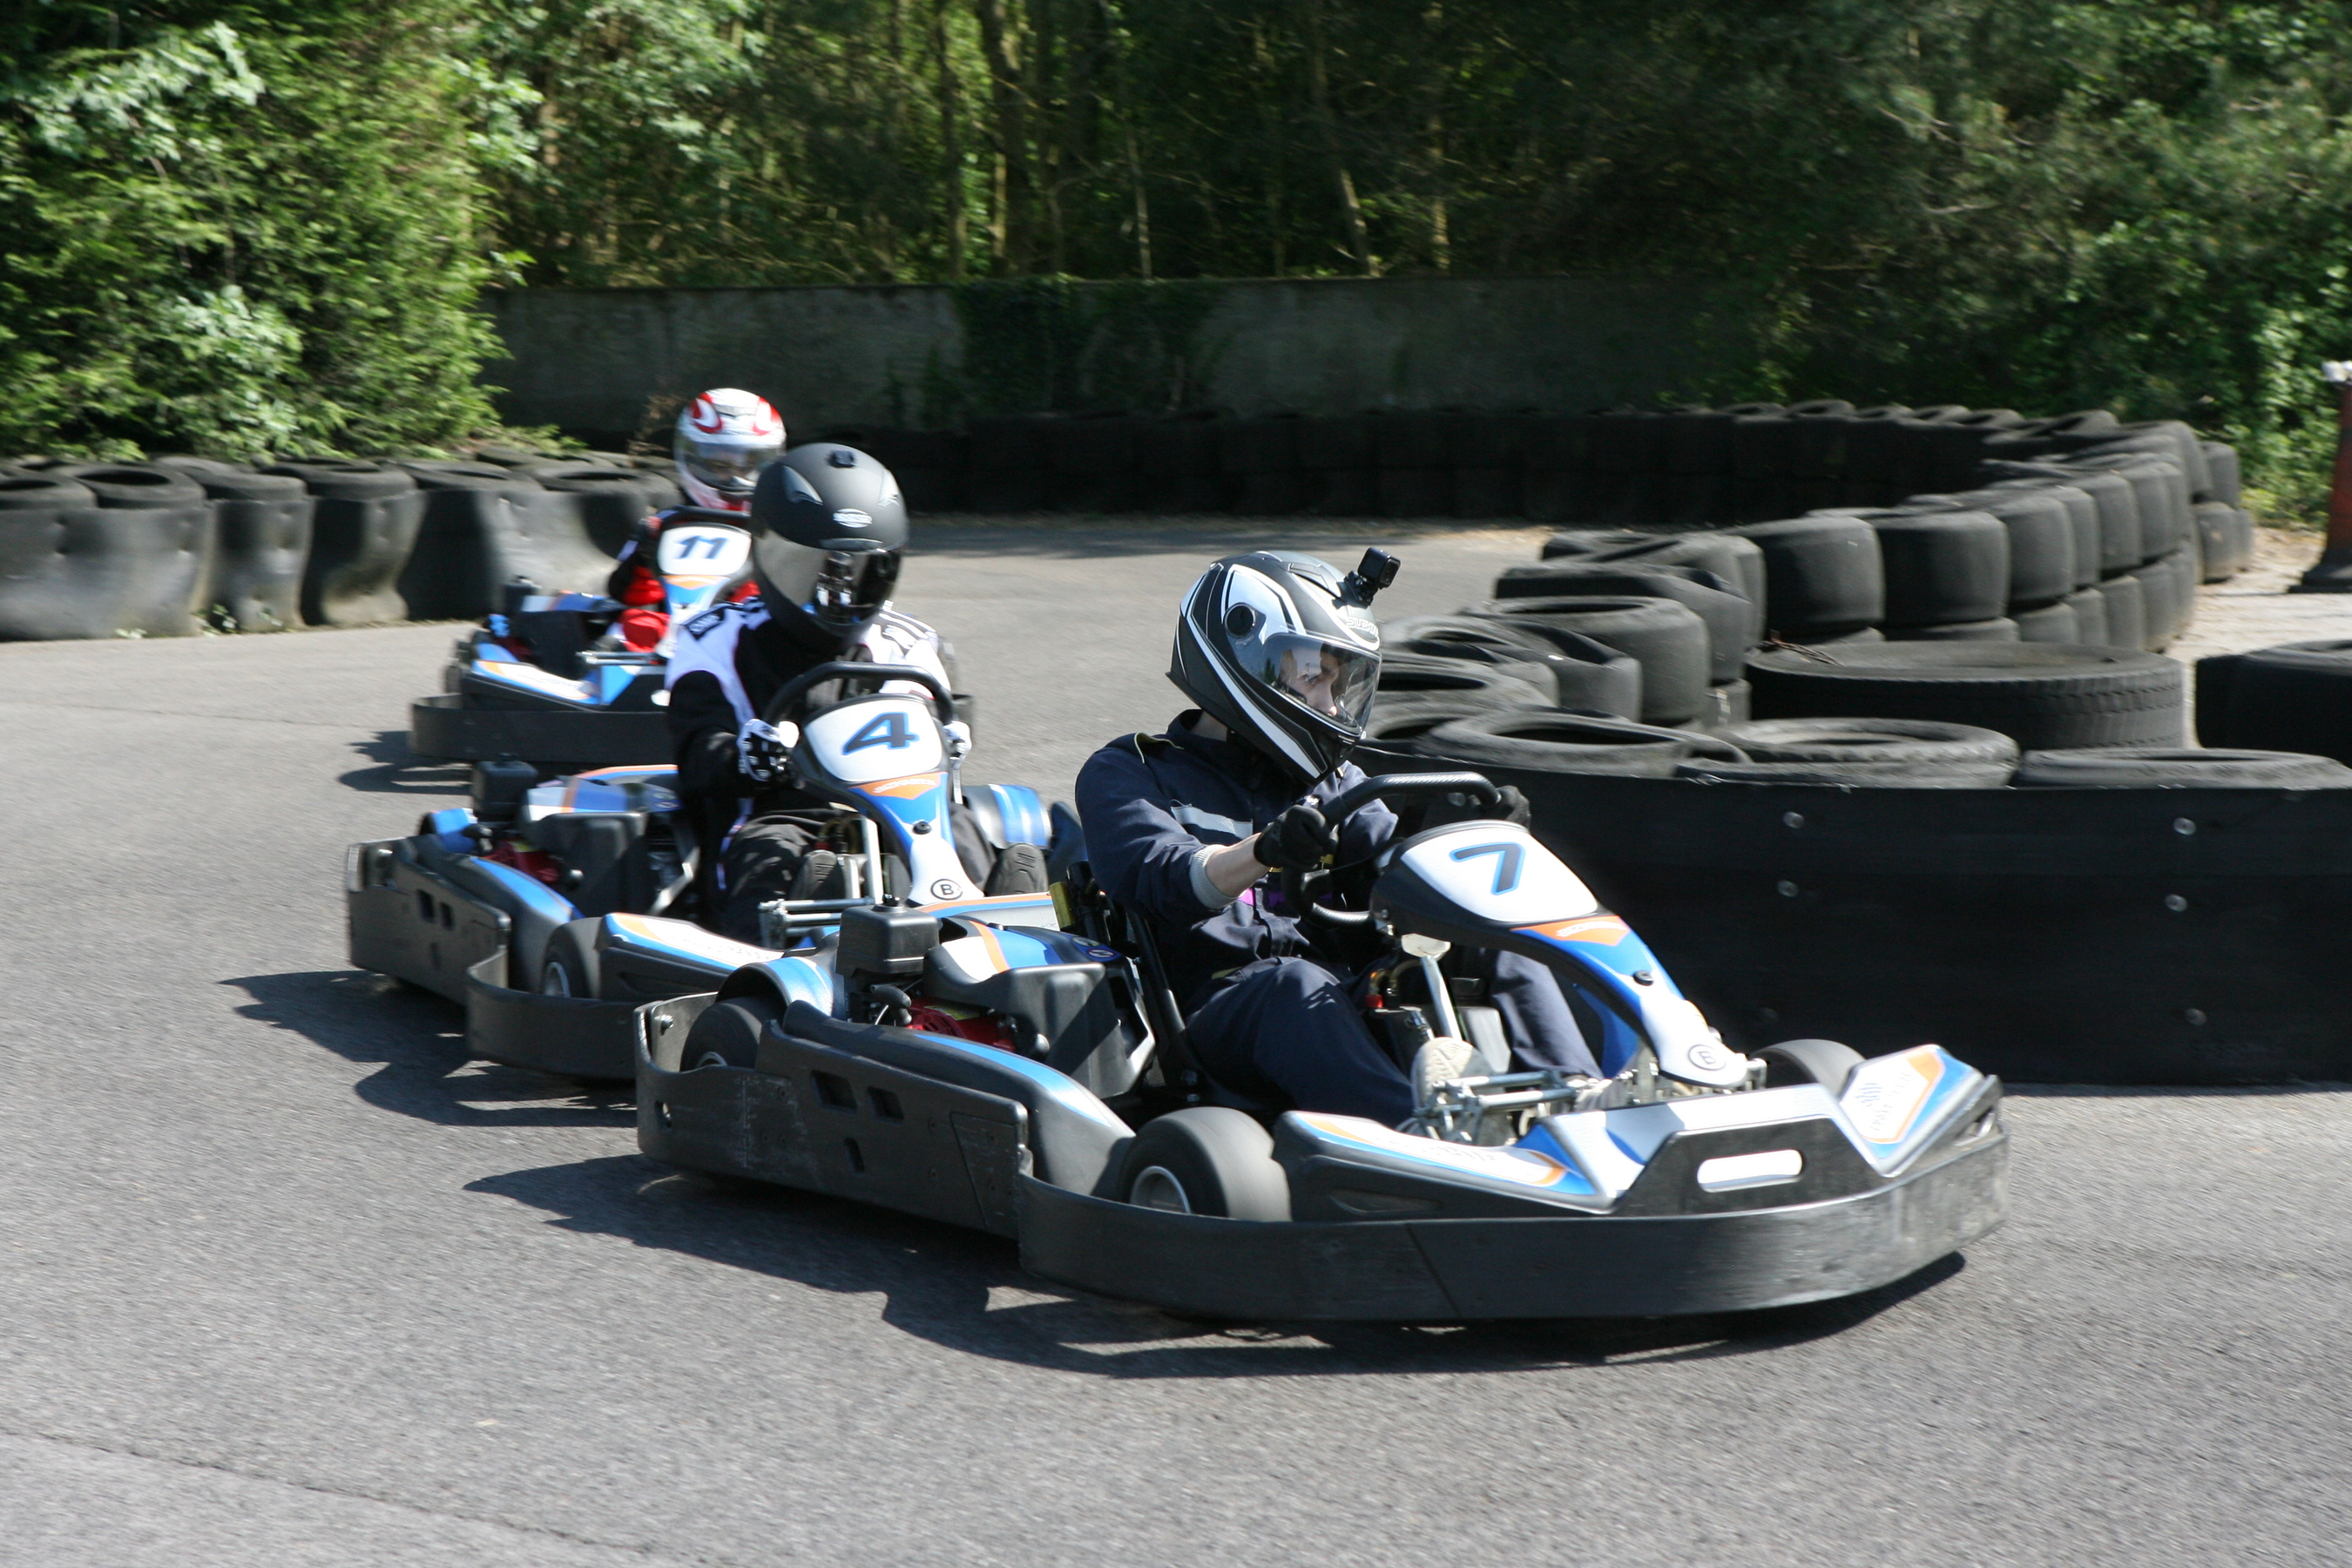 Castle Combe Karting Championship